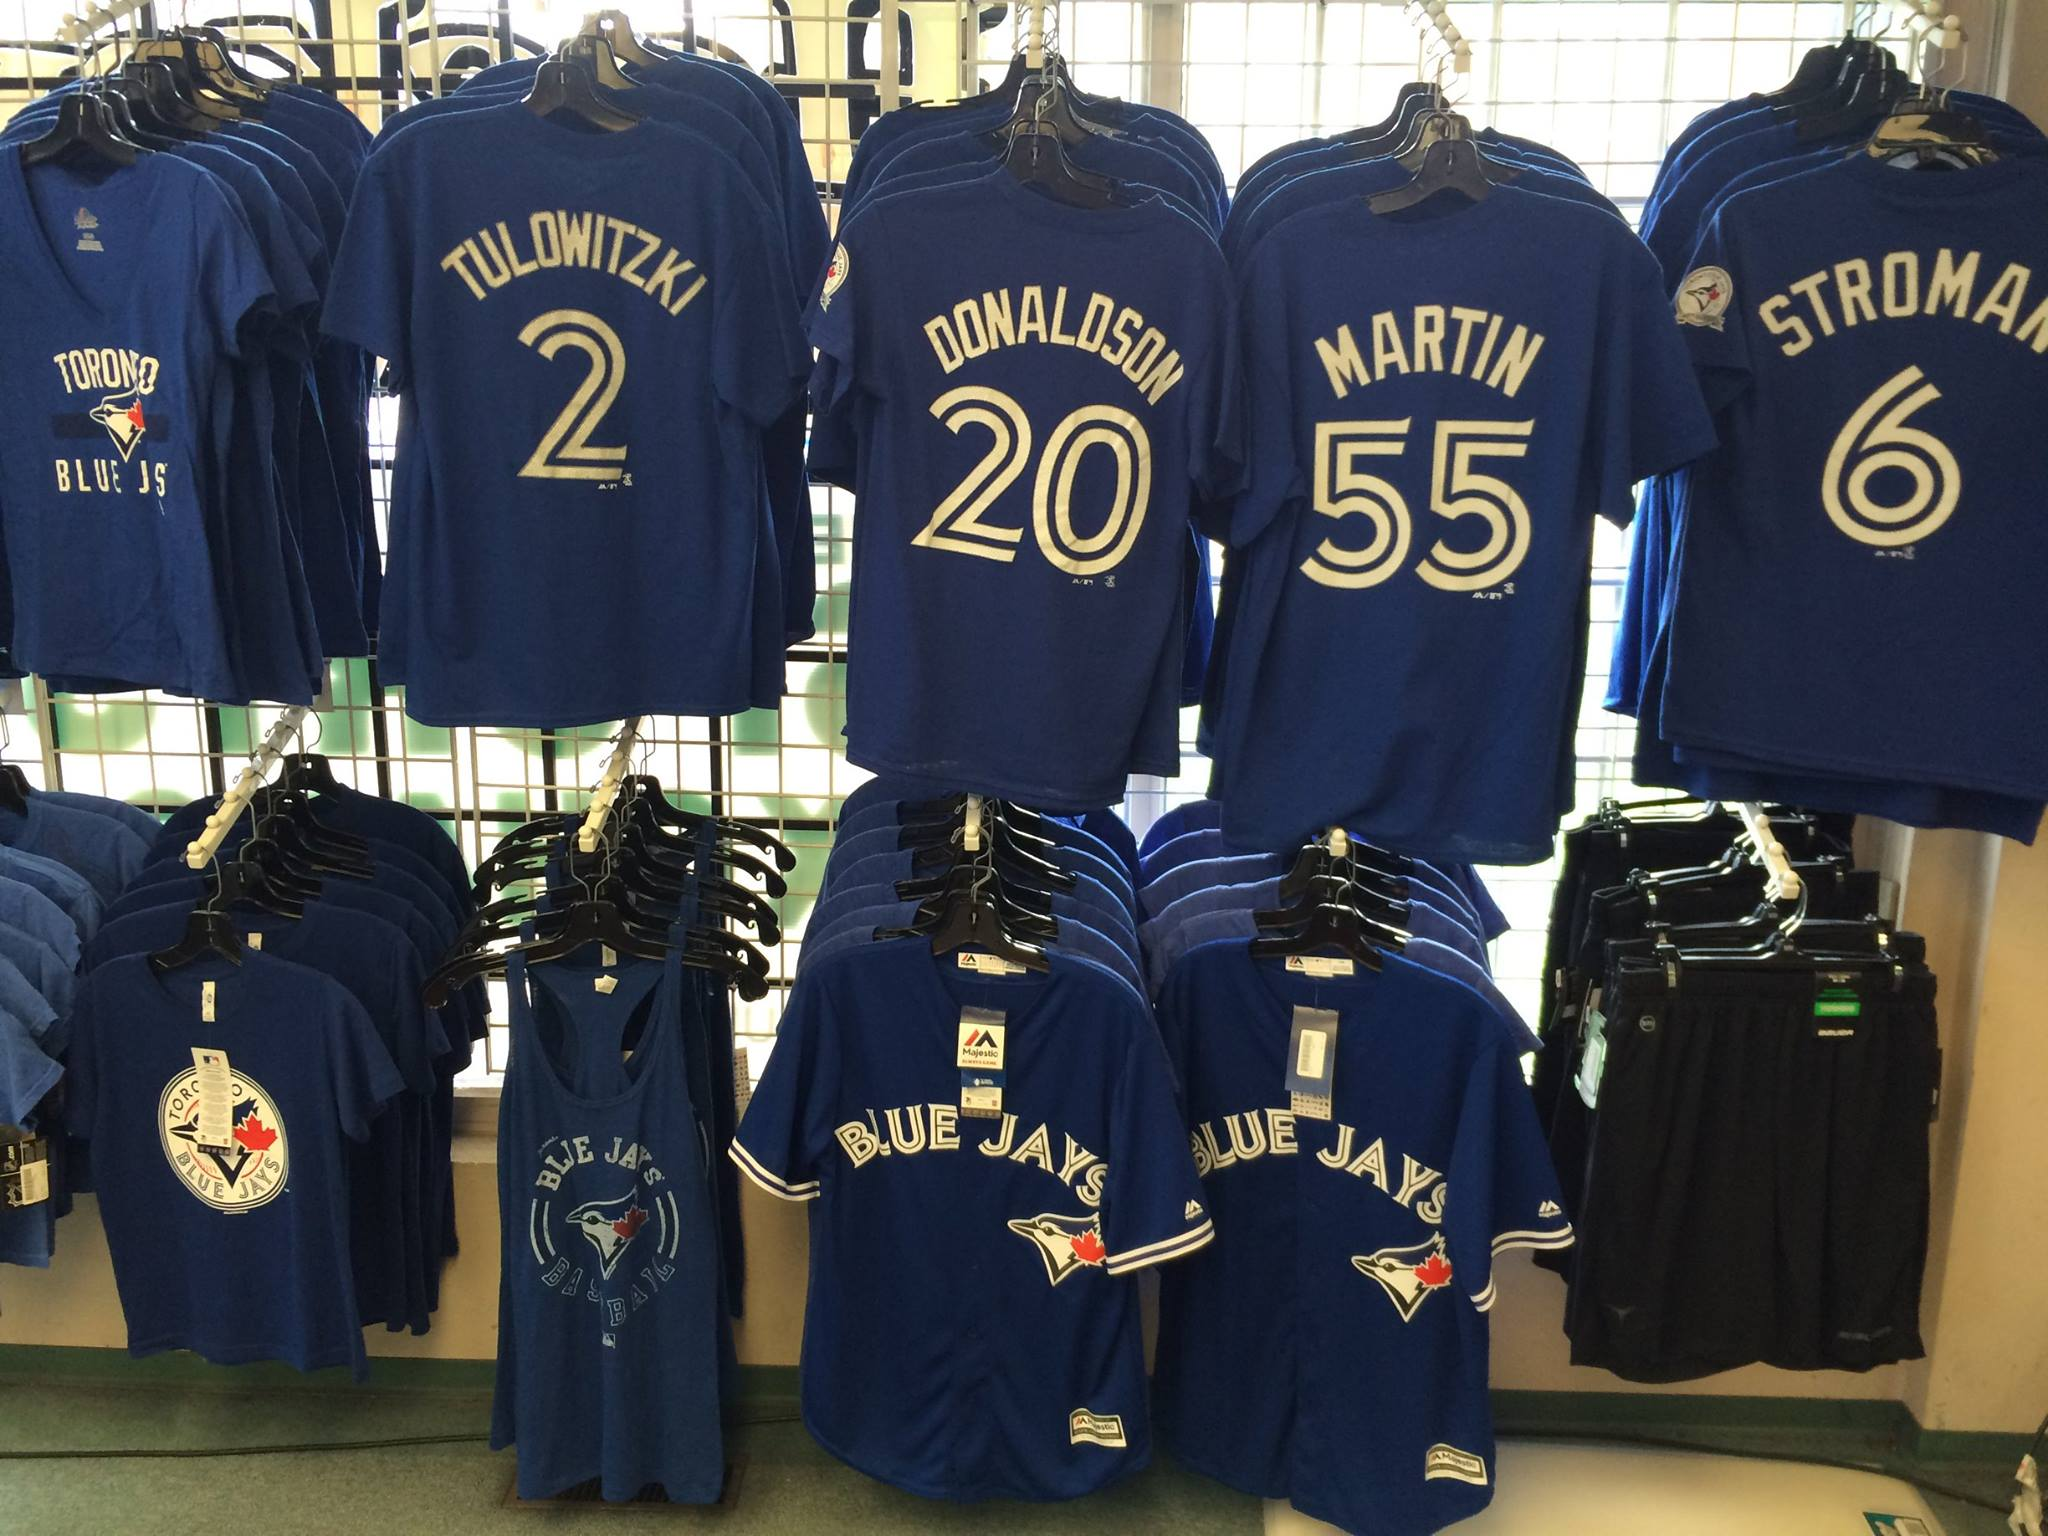 9efa825a053 Blue Jays gear at The Sports Exchange (The Sports Exchange Facebook)